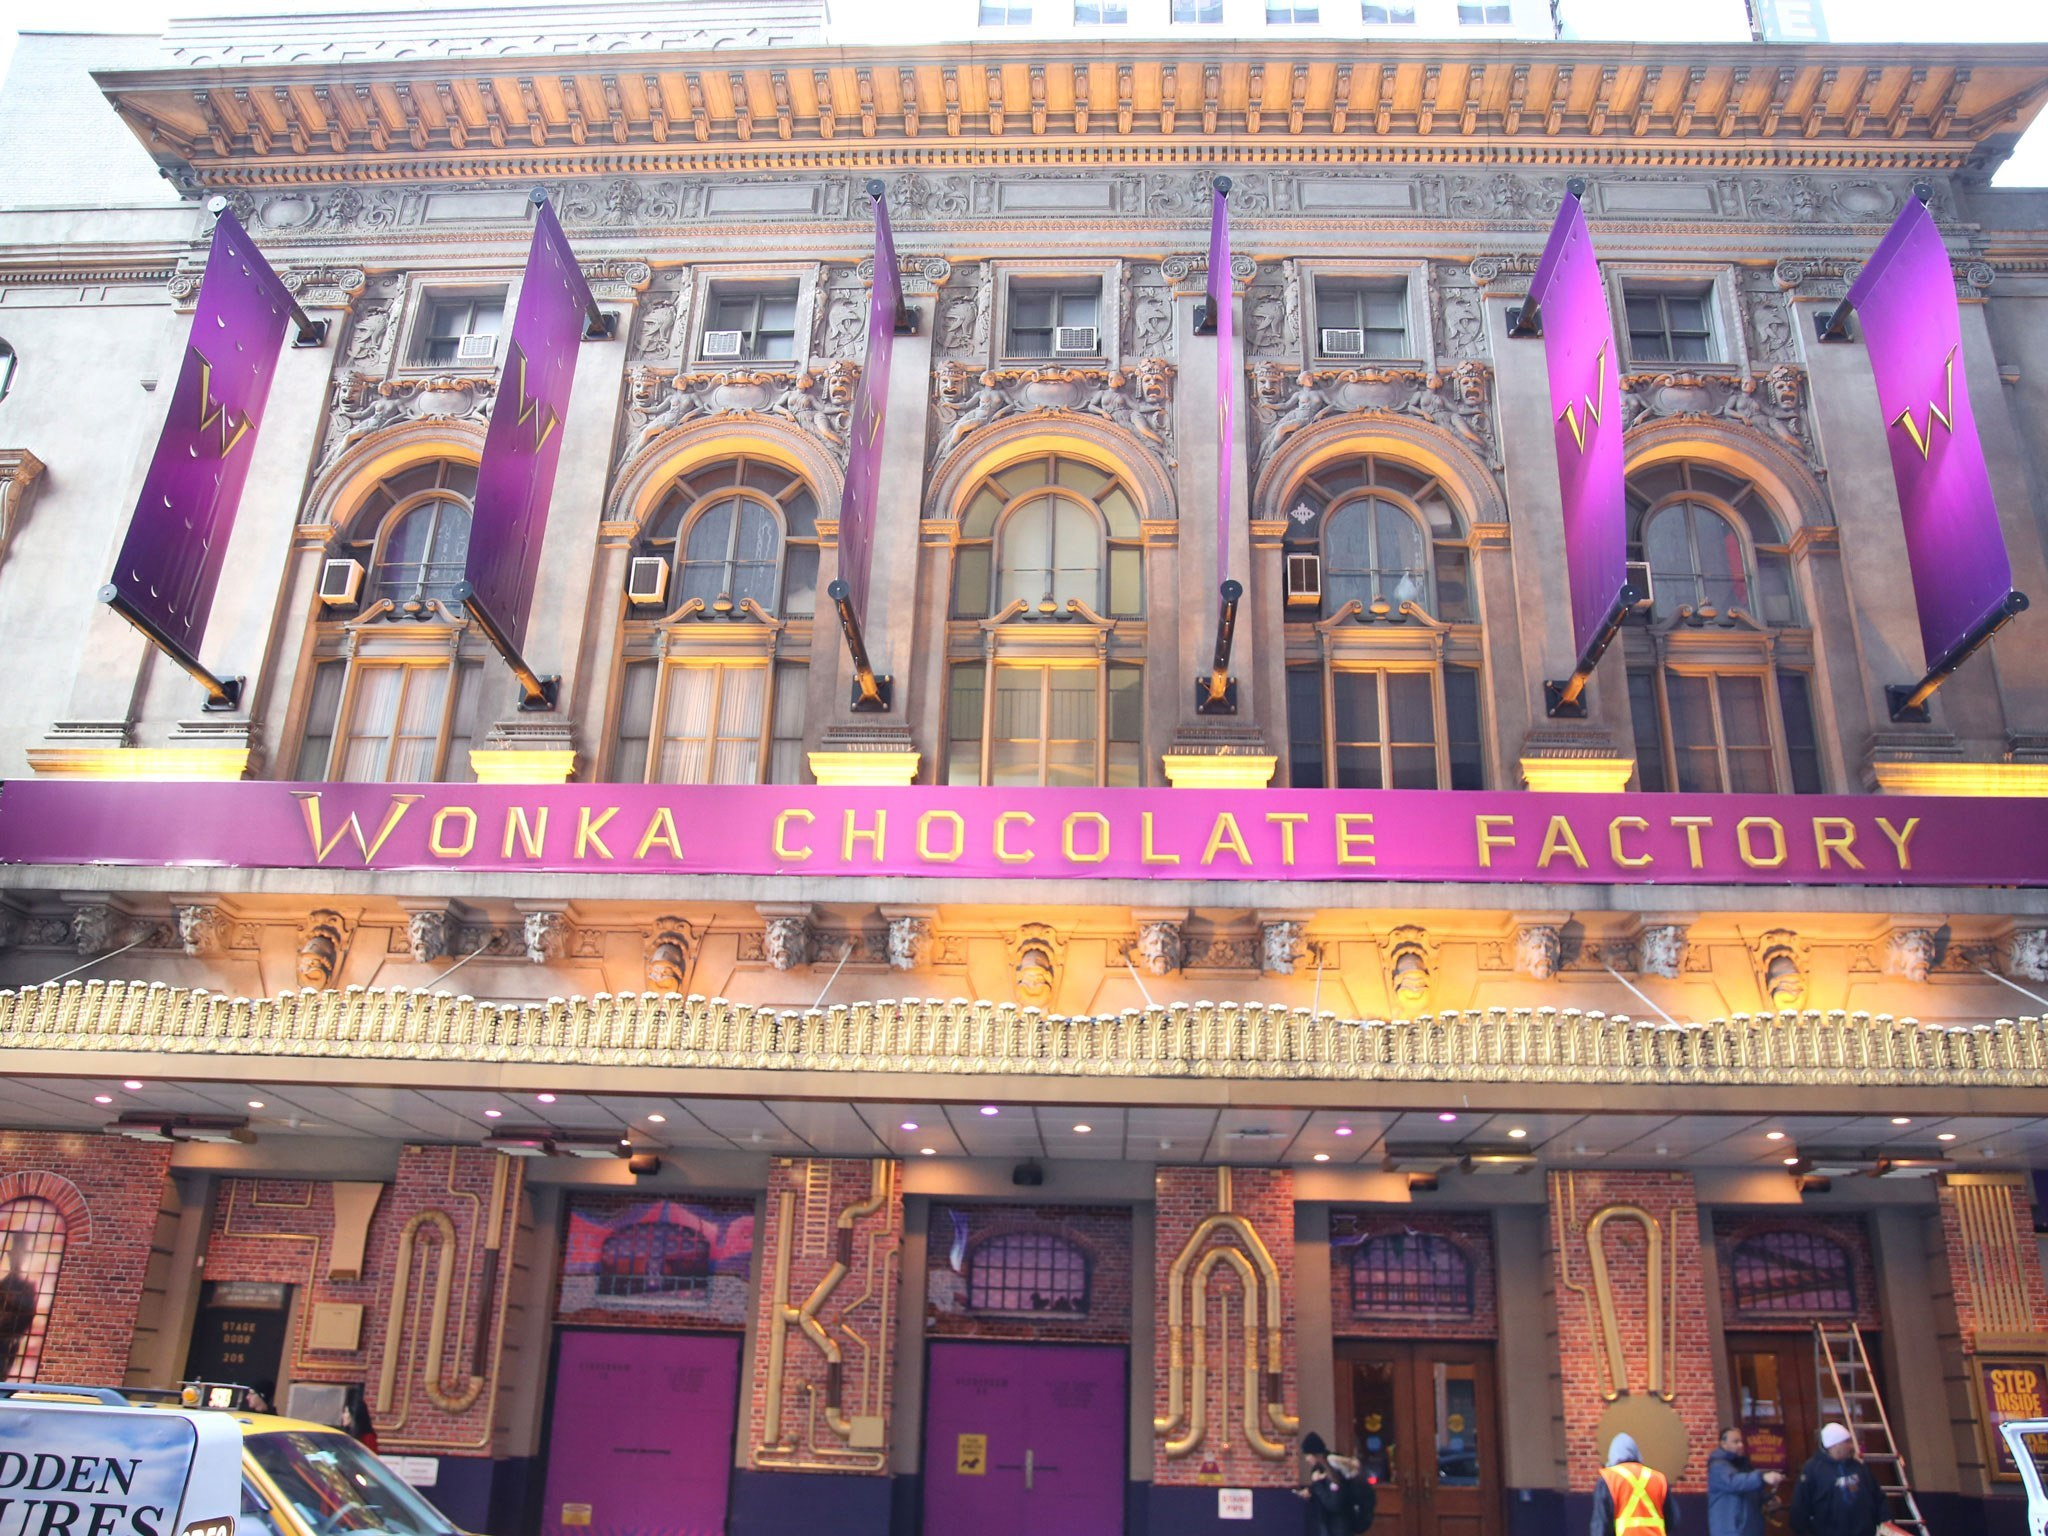 Charlie and the Chocolate Factory Broadway Theatre Marquee